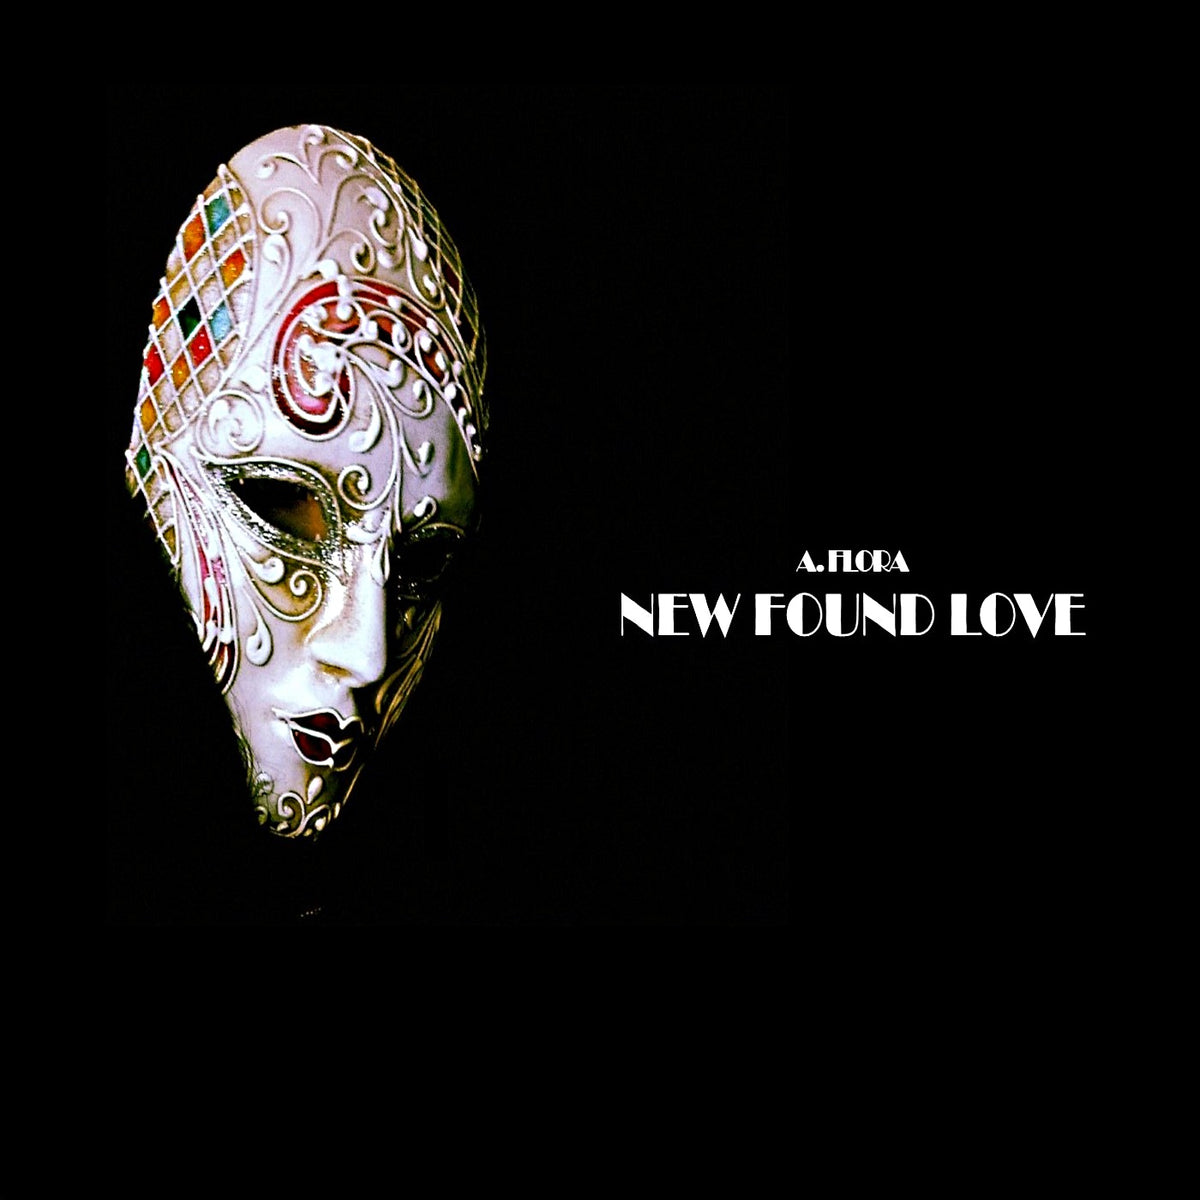 A. Flora - New Found Love Single Cover Art